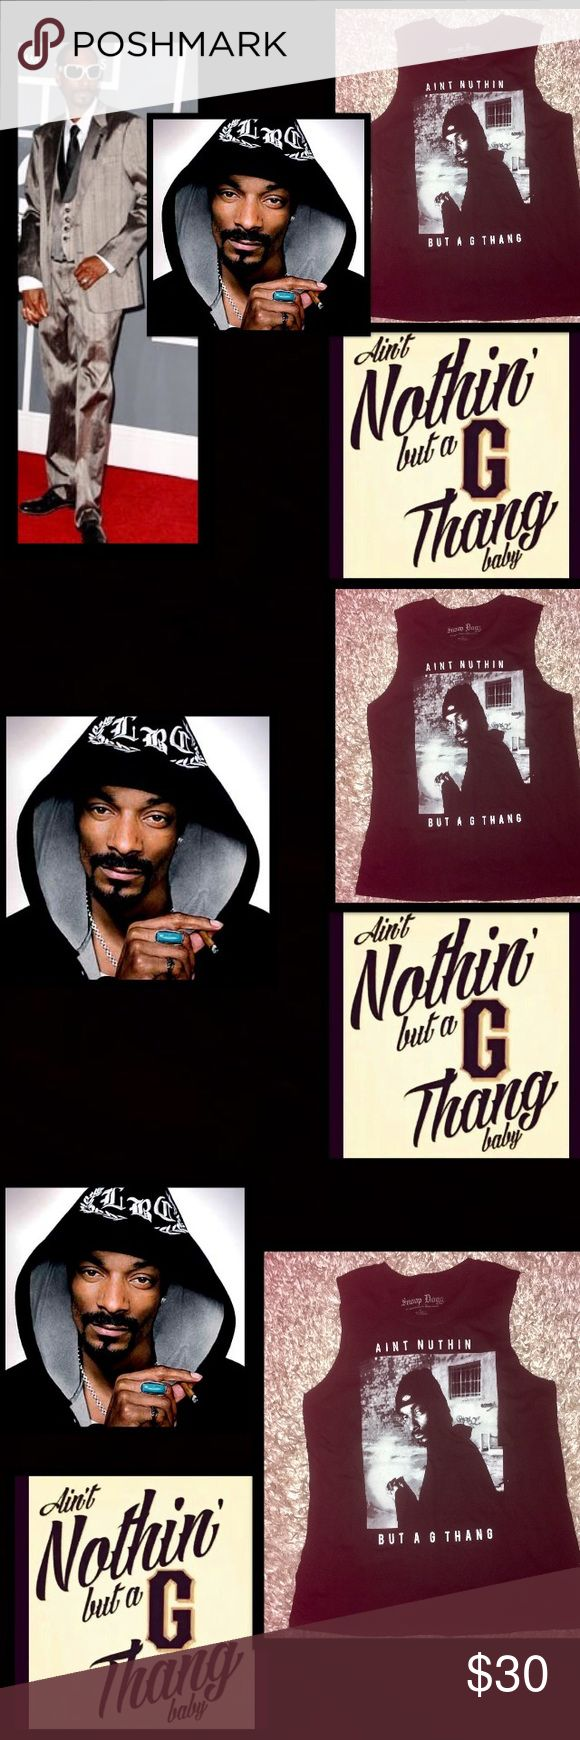 """🆕Spanky Clothing• Snoop Dogg•G Thang Tank Cordozar Calvin Broadus Jr.(born October 20, 1971)AKA  Official Snoop Dogg Tha Doggfather Spanky's Clothing Licensed Black tank too•""""Aint Nothing But A G Thang"""" One, two,three and to the four,Snoop Doggy Dogg and Dr. Dre is at the doorReady to make an entrance, so back on up('Cause you know we're about to rip shit up)Give me the microphone first so I can bust,like a bubble,Compton & Long Beach together Now you know you're in trouble""""Ain't nothing…"""